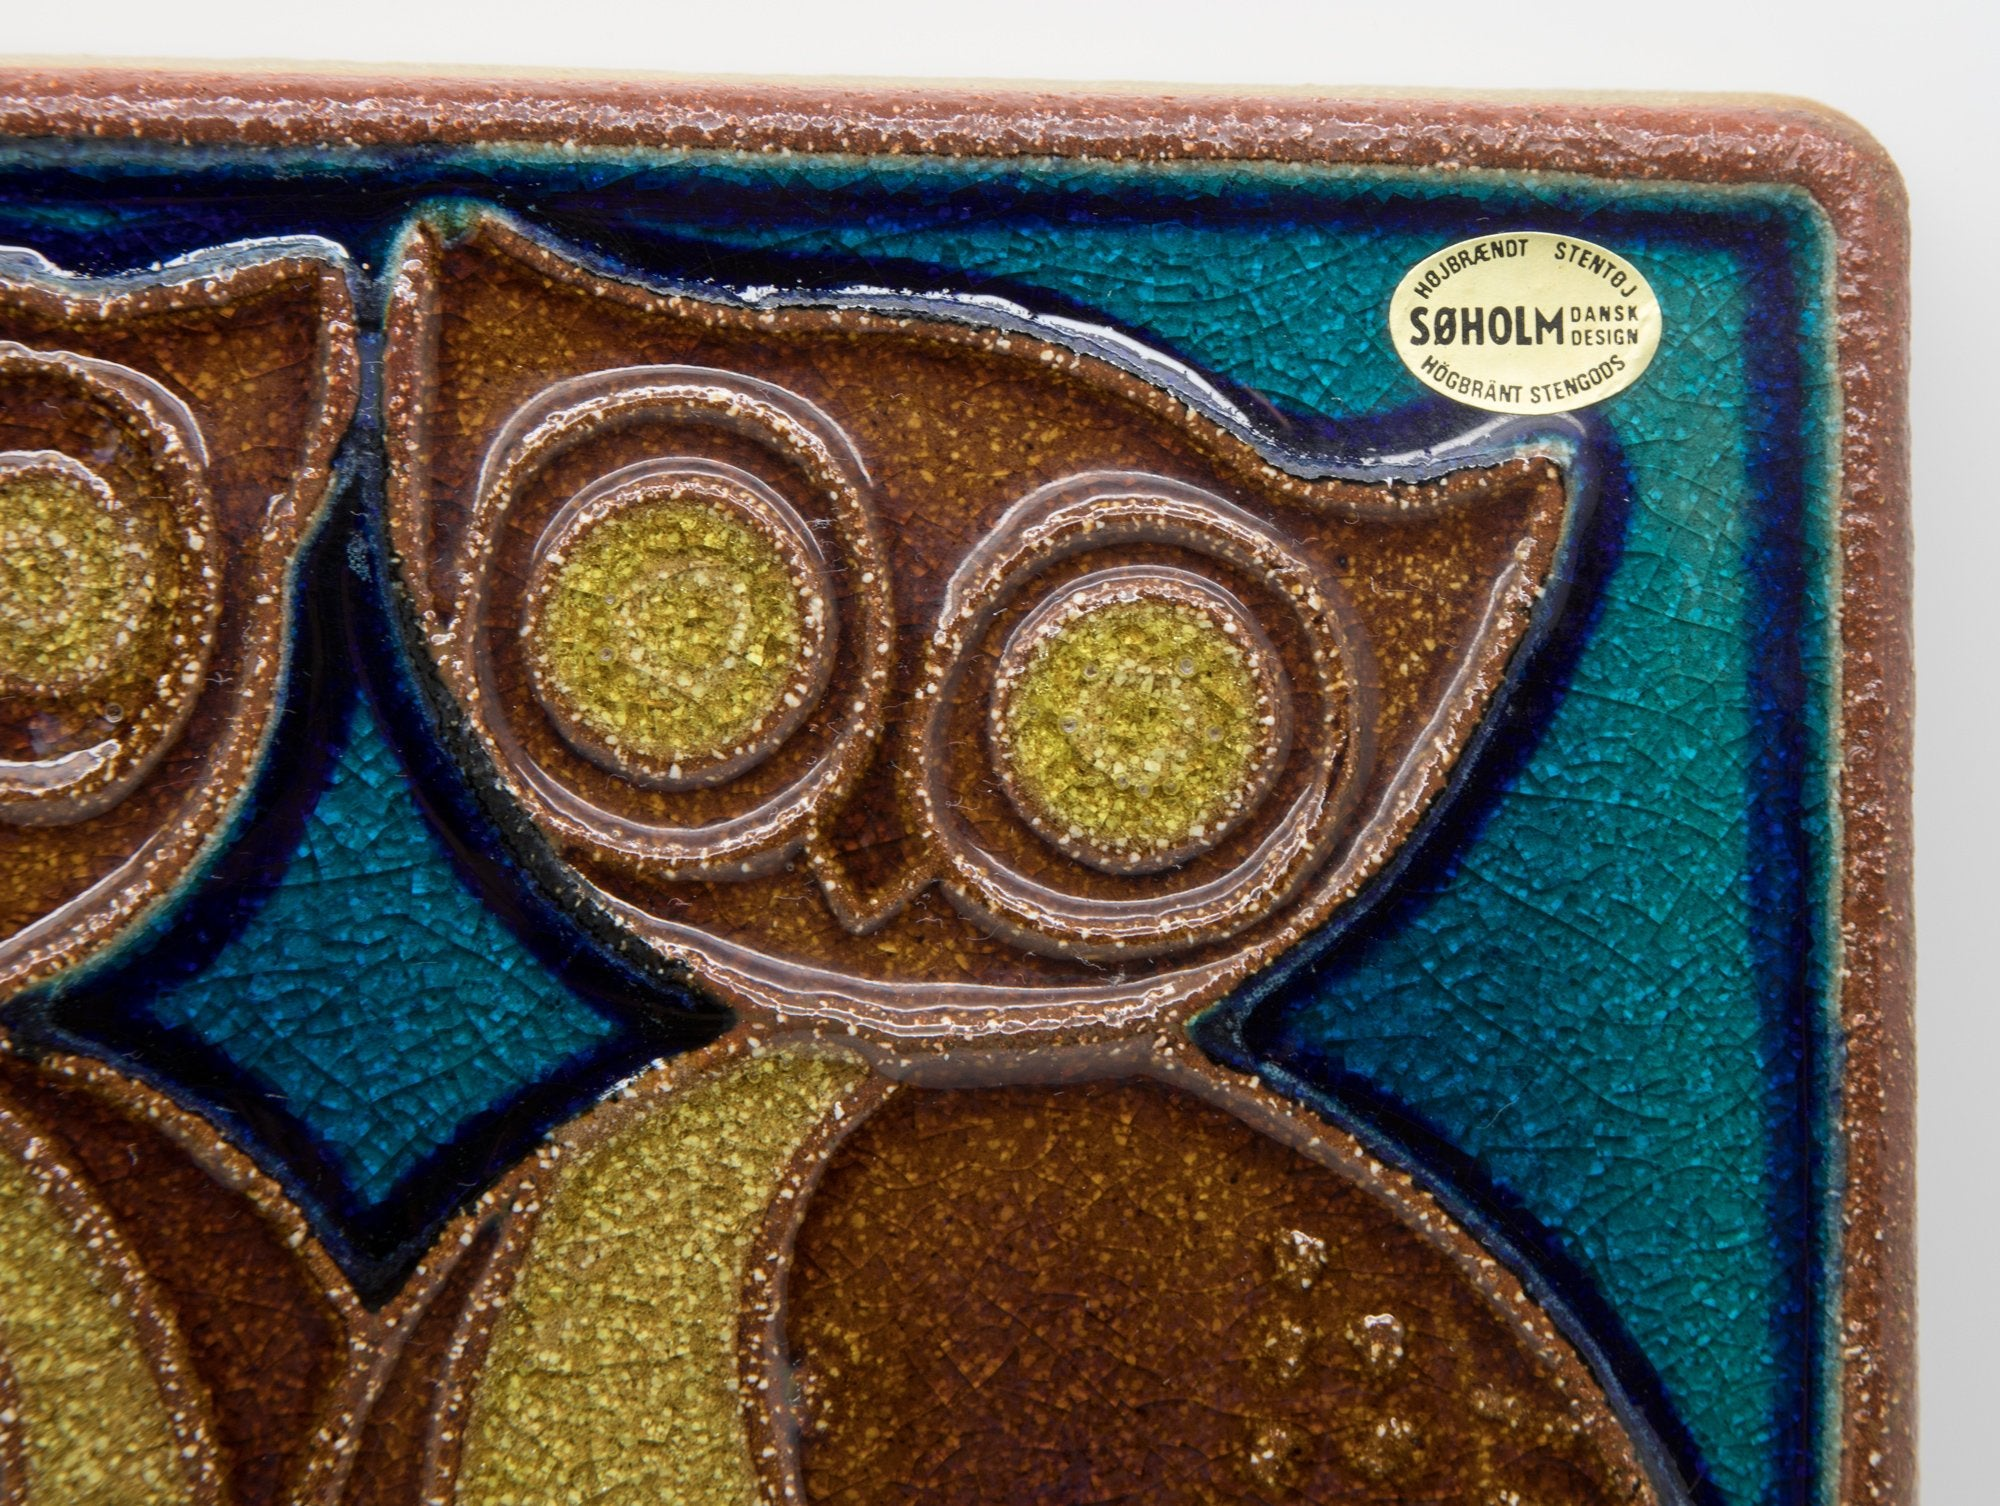 JOSEPH SIMON Søholm Two Owls Stoneware Wall Plaque - Mollaris.com